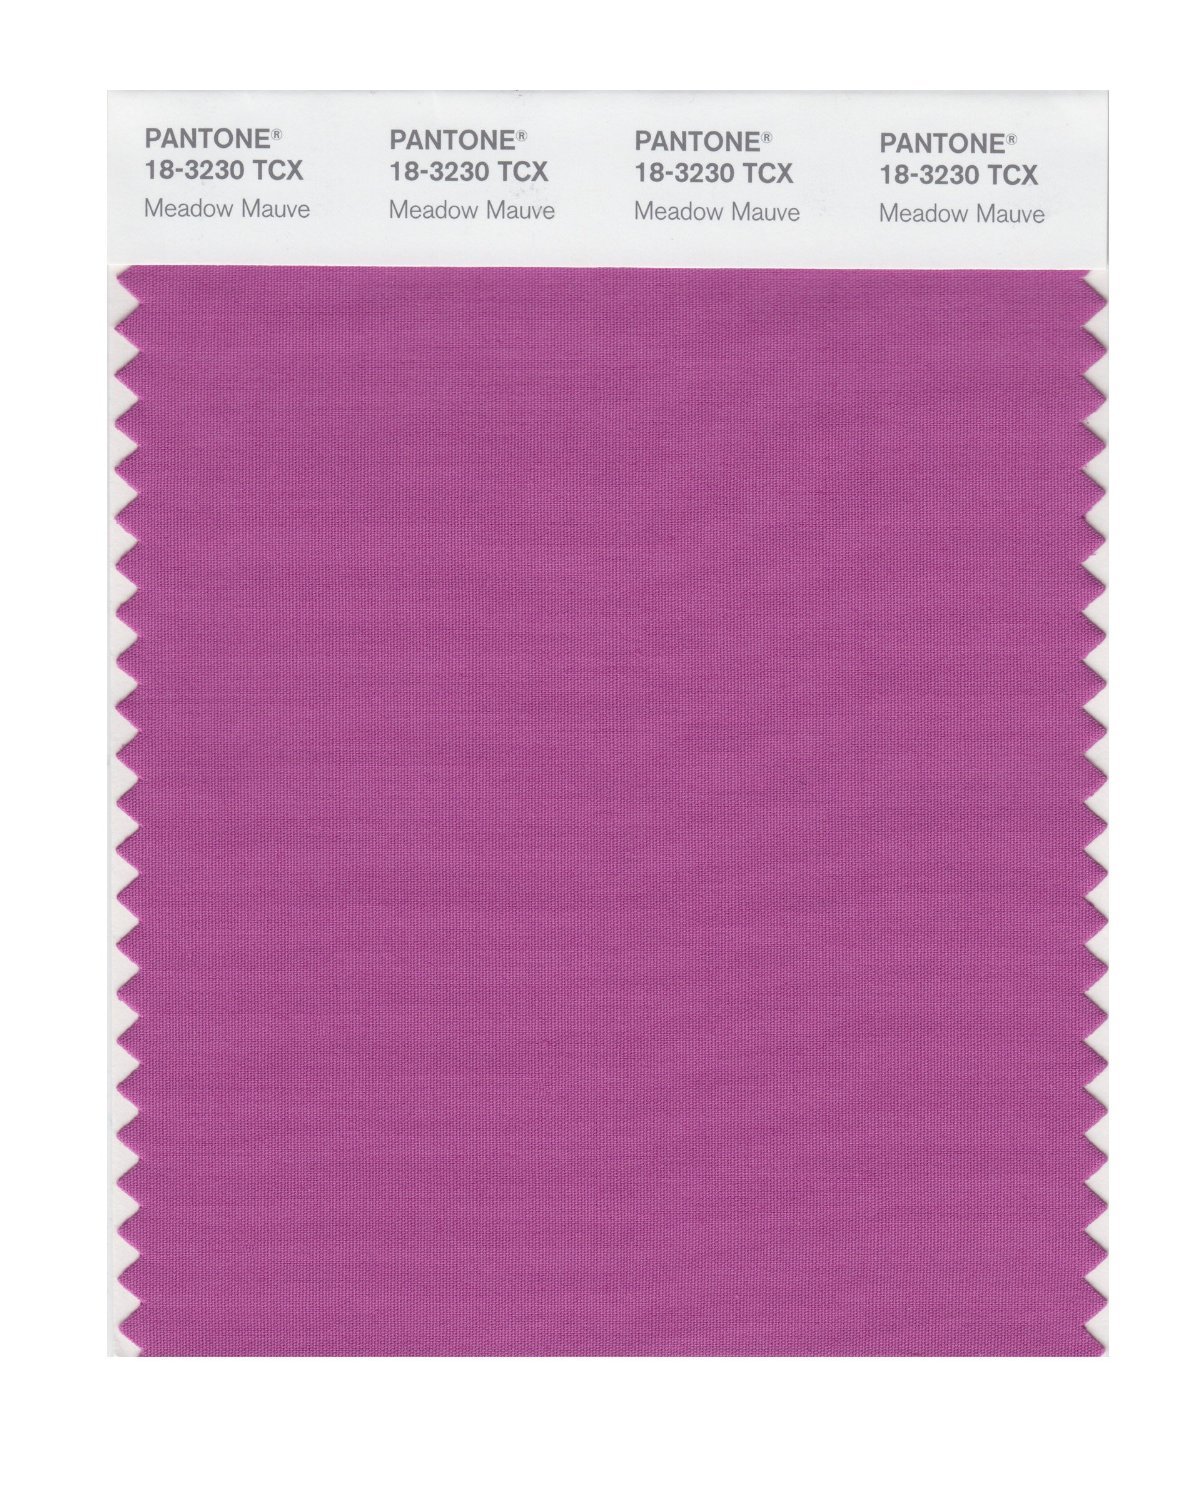 Pantone Smart Swatch 18-3230 Meadow Mauve